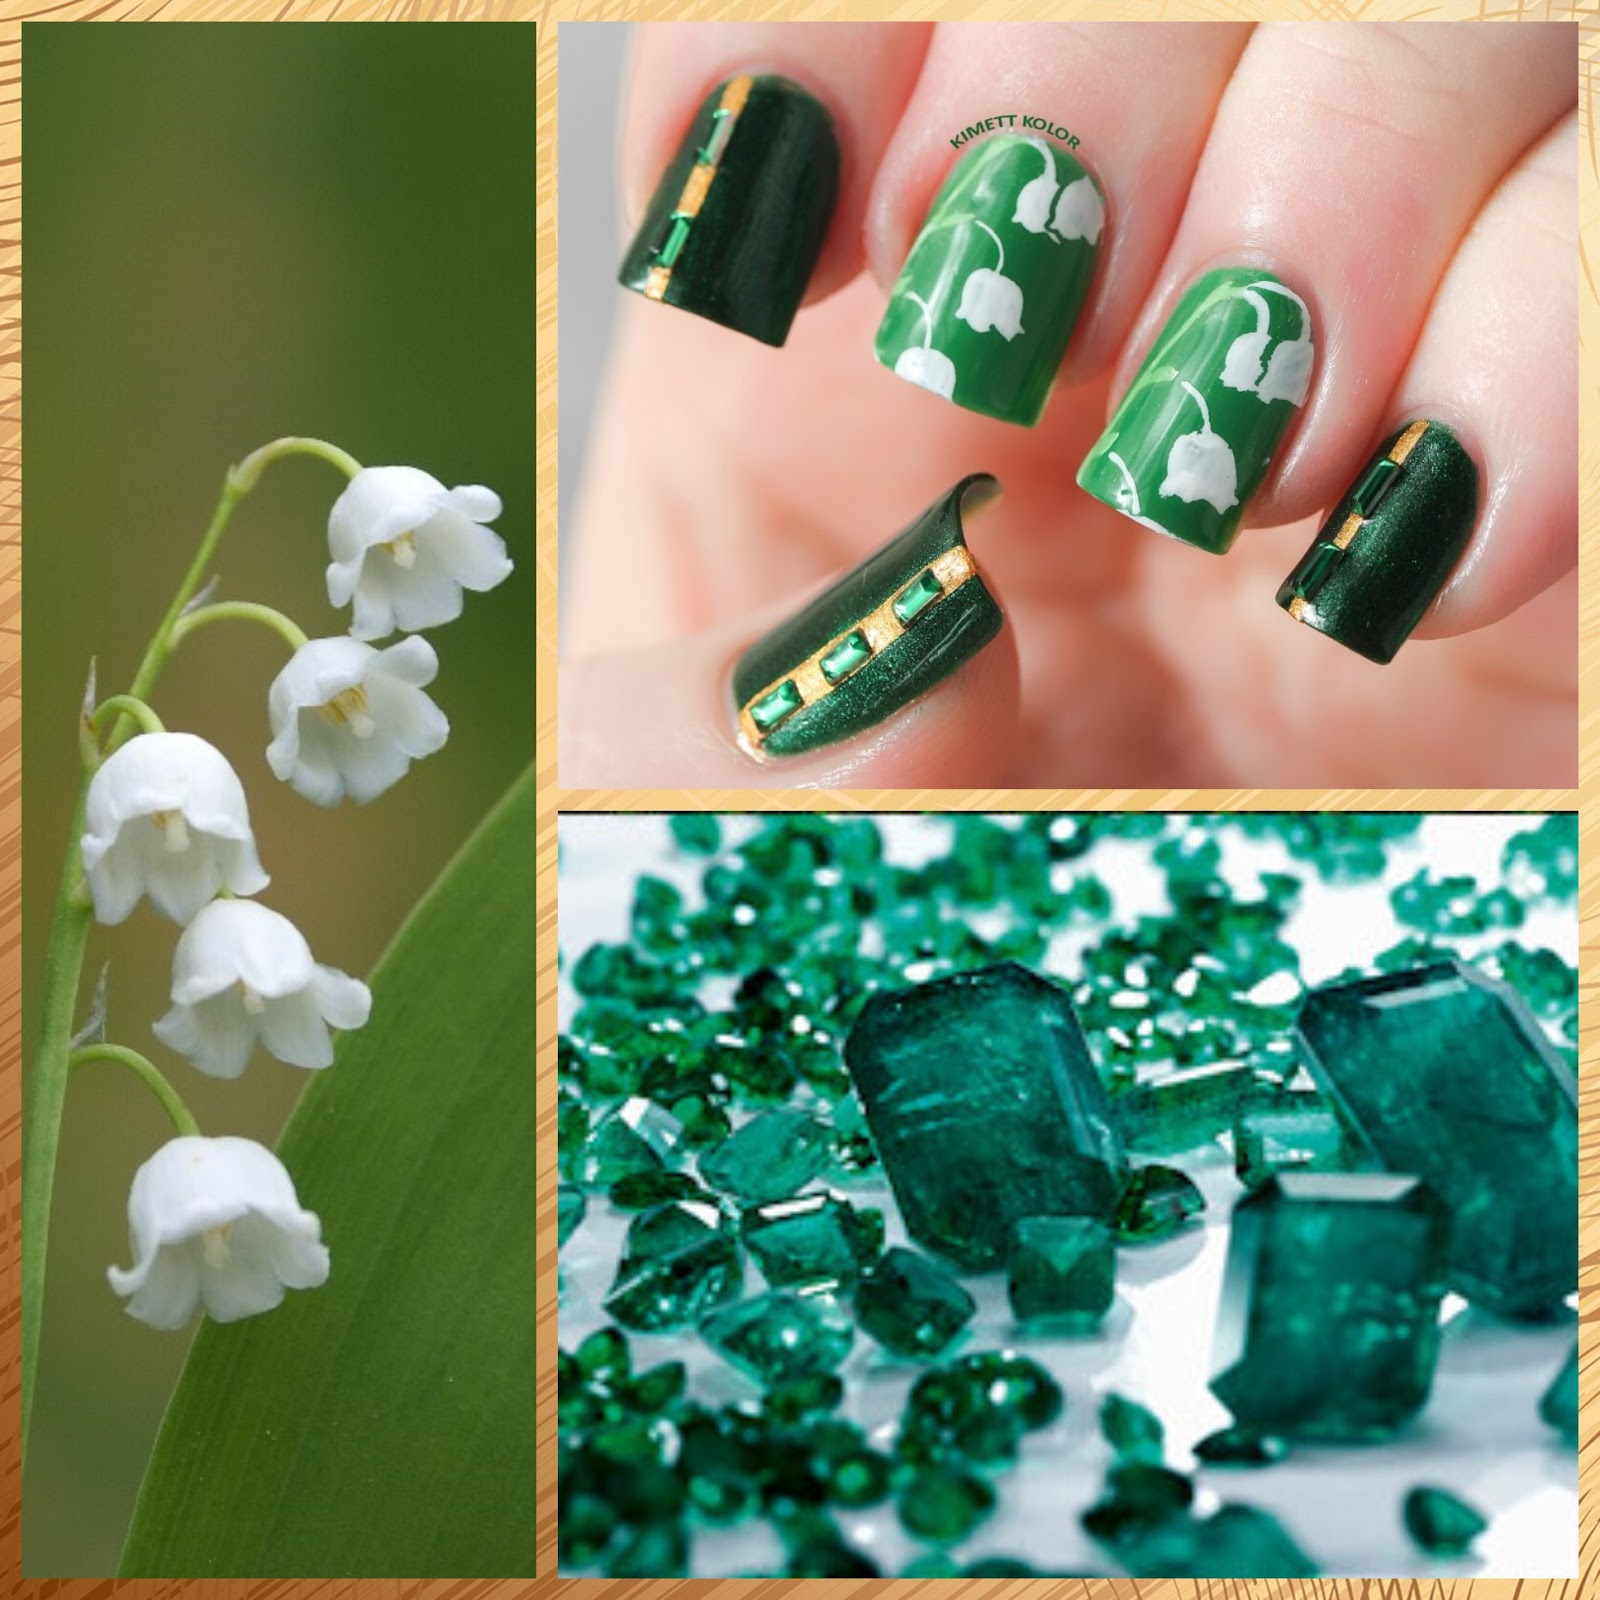 Emerald and Lily of the Valley March Nail Art Design by KimettKolor